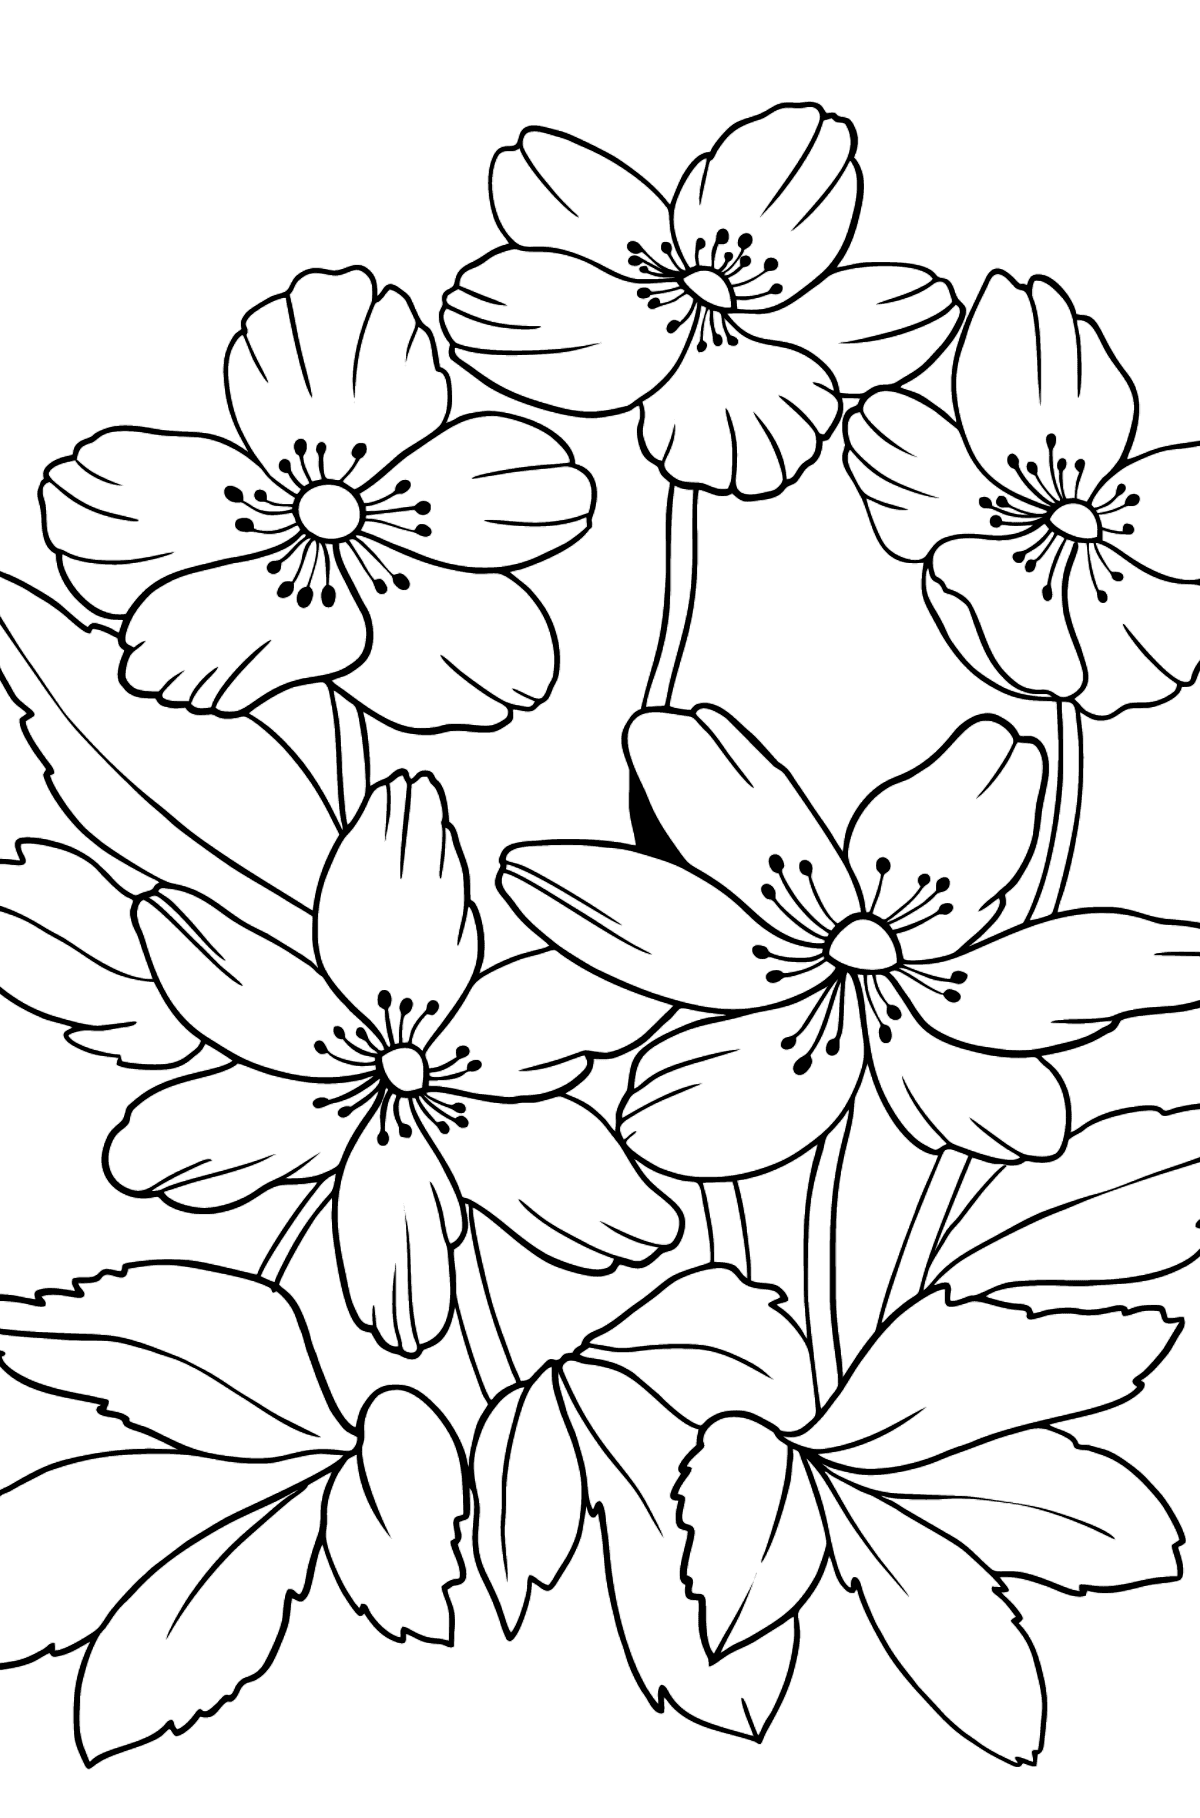 Flower Coloring Page - Windflower - Coloring Pages for Kids